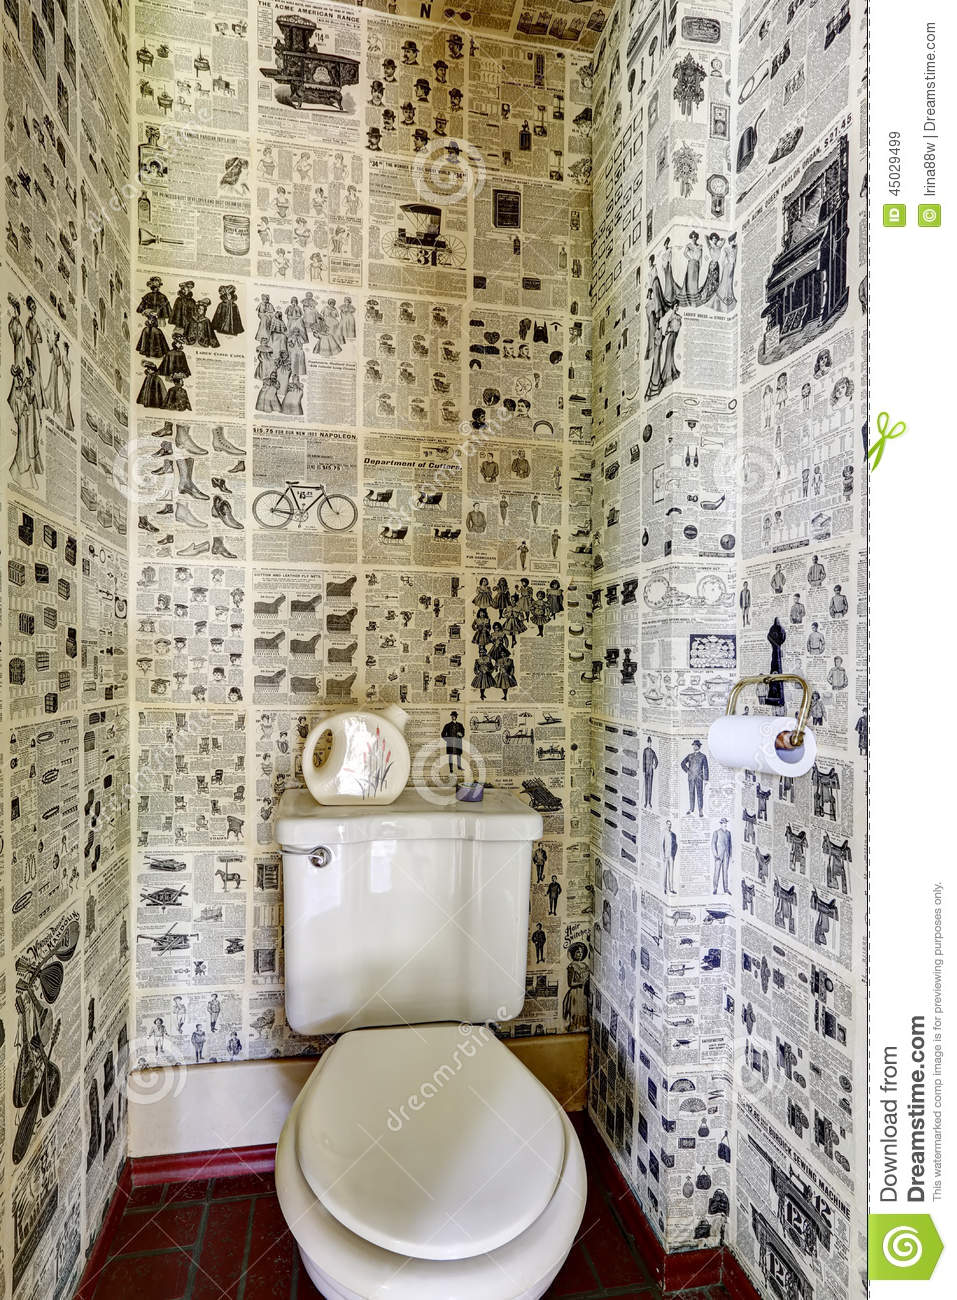 3d House Wallpaper Room Restroom Interior Design News Paper All Over The Wall